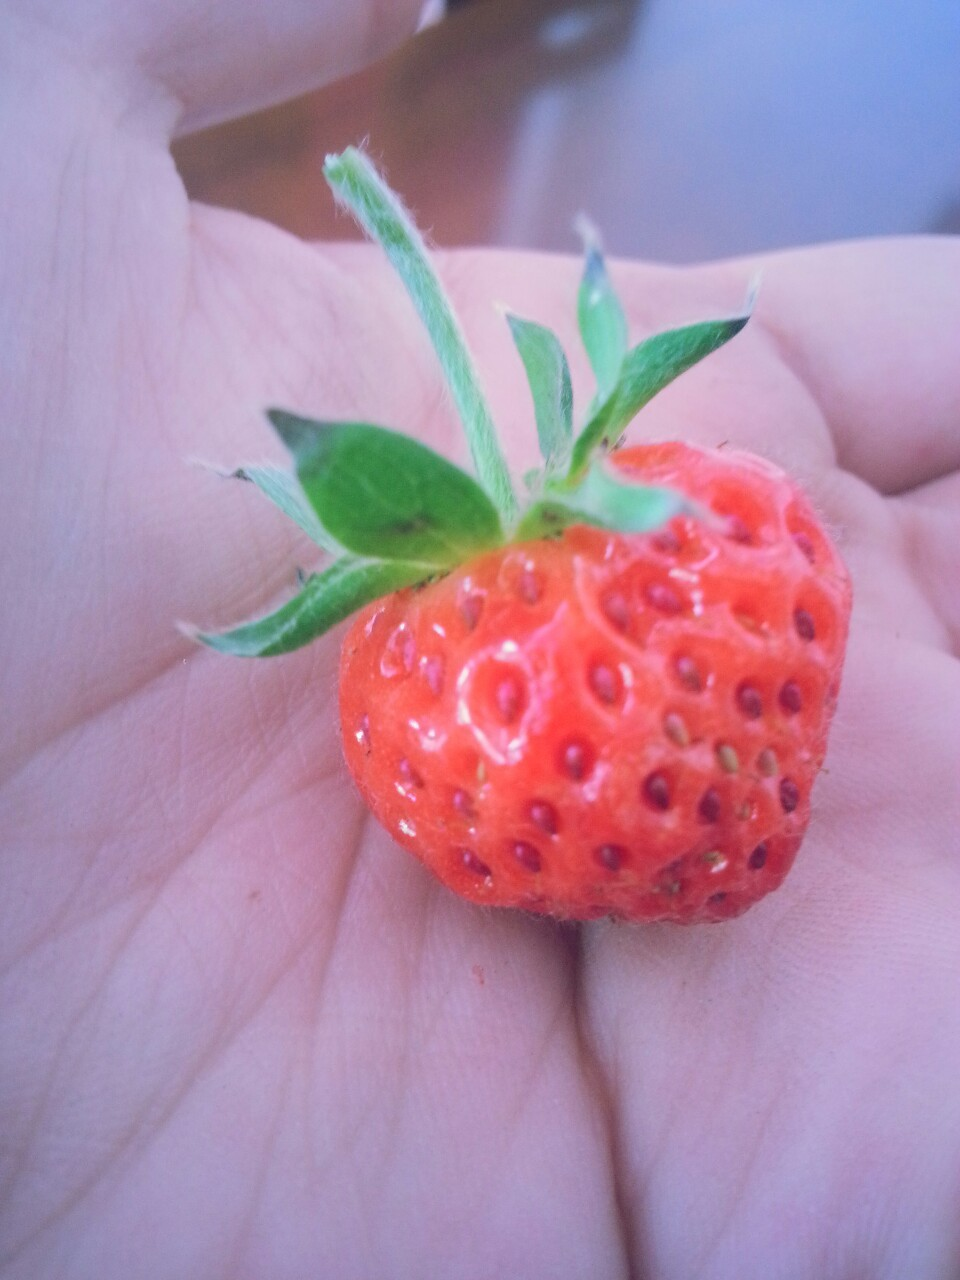 Self-grown strawberry